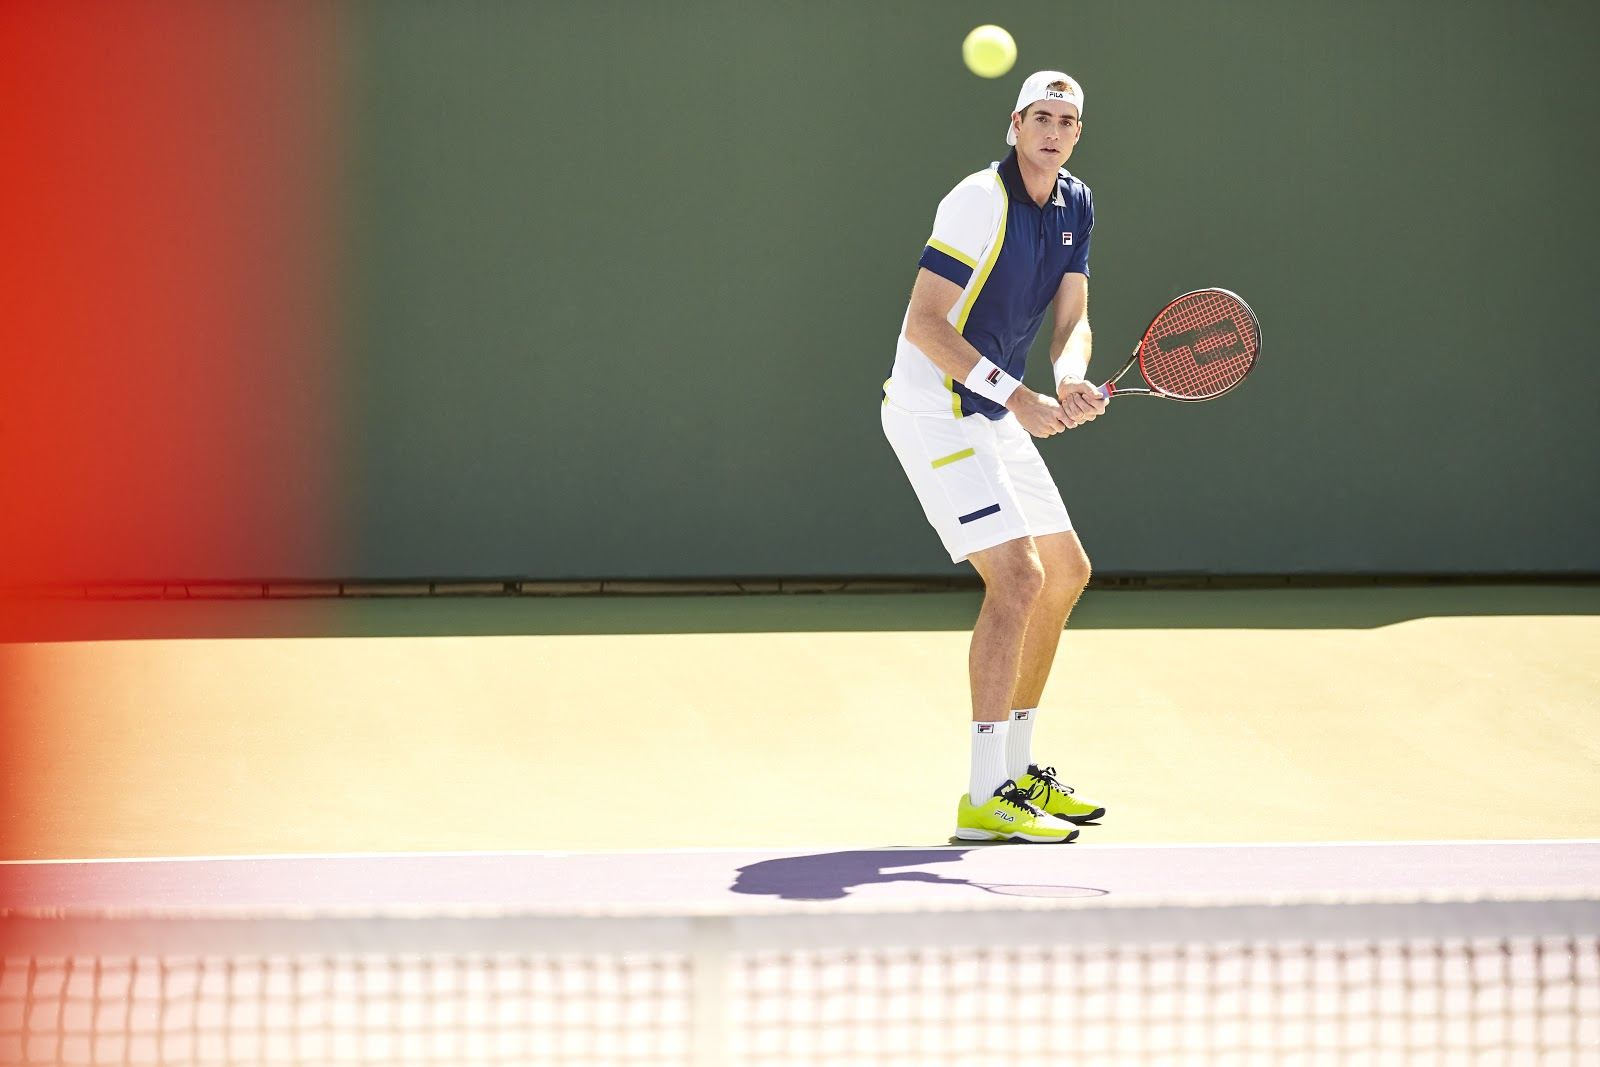 FILA Introduces New PLR and 30 Love Tennis Collections for